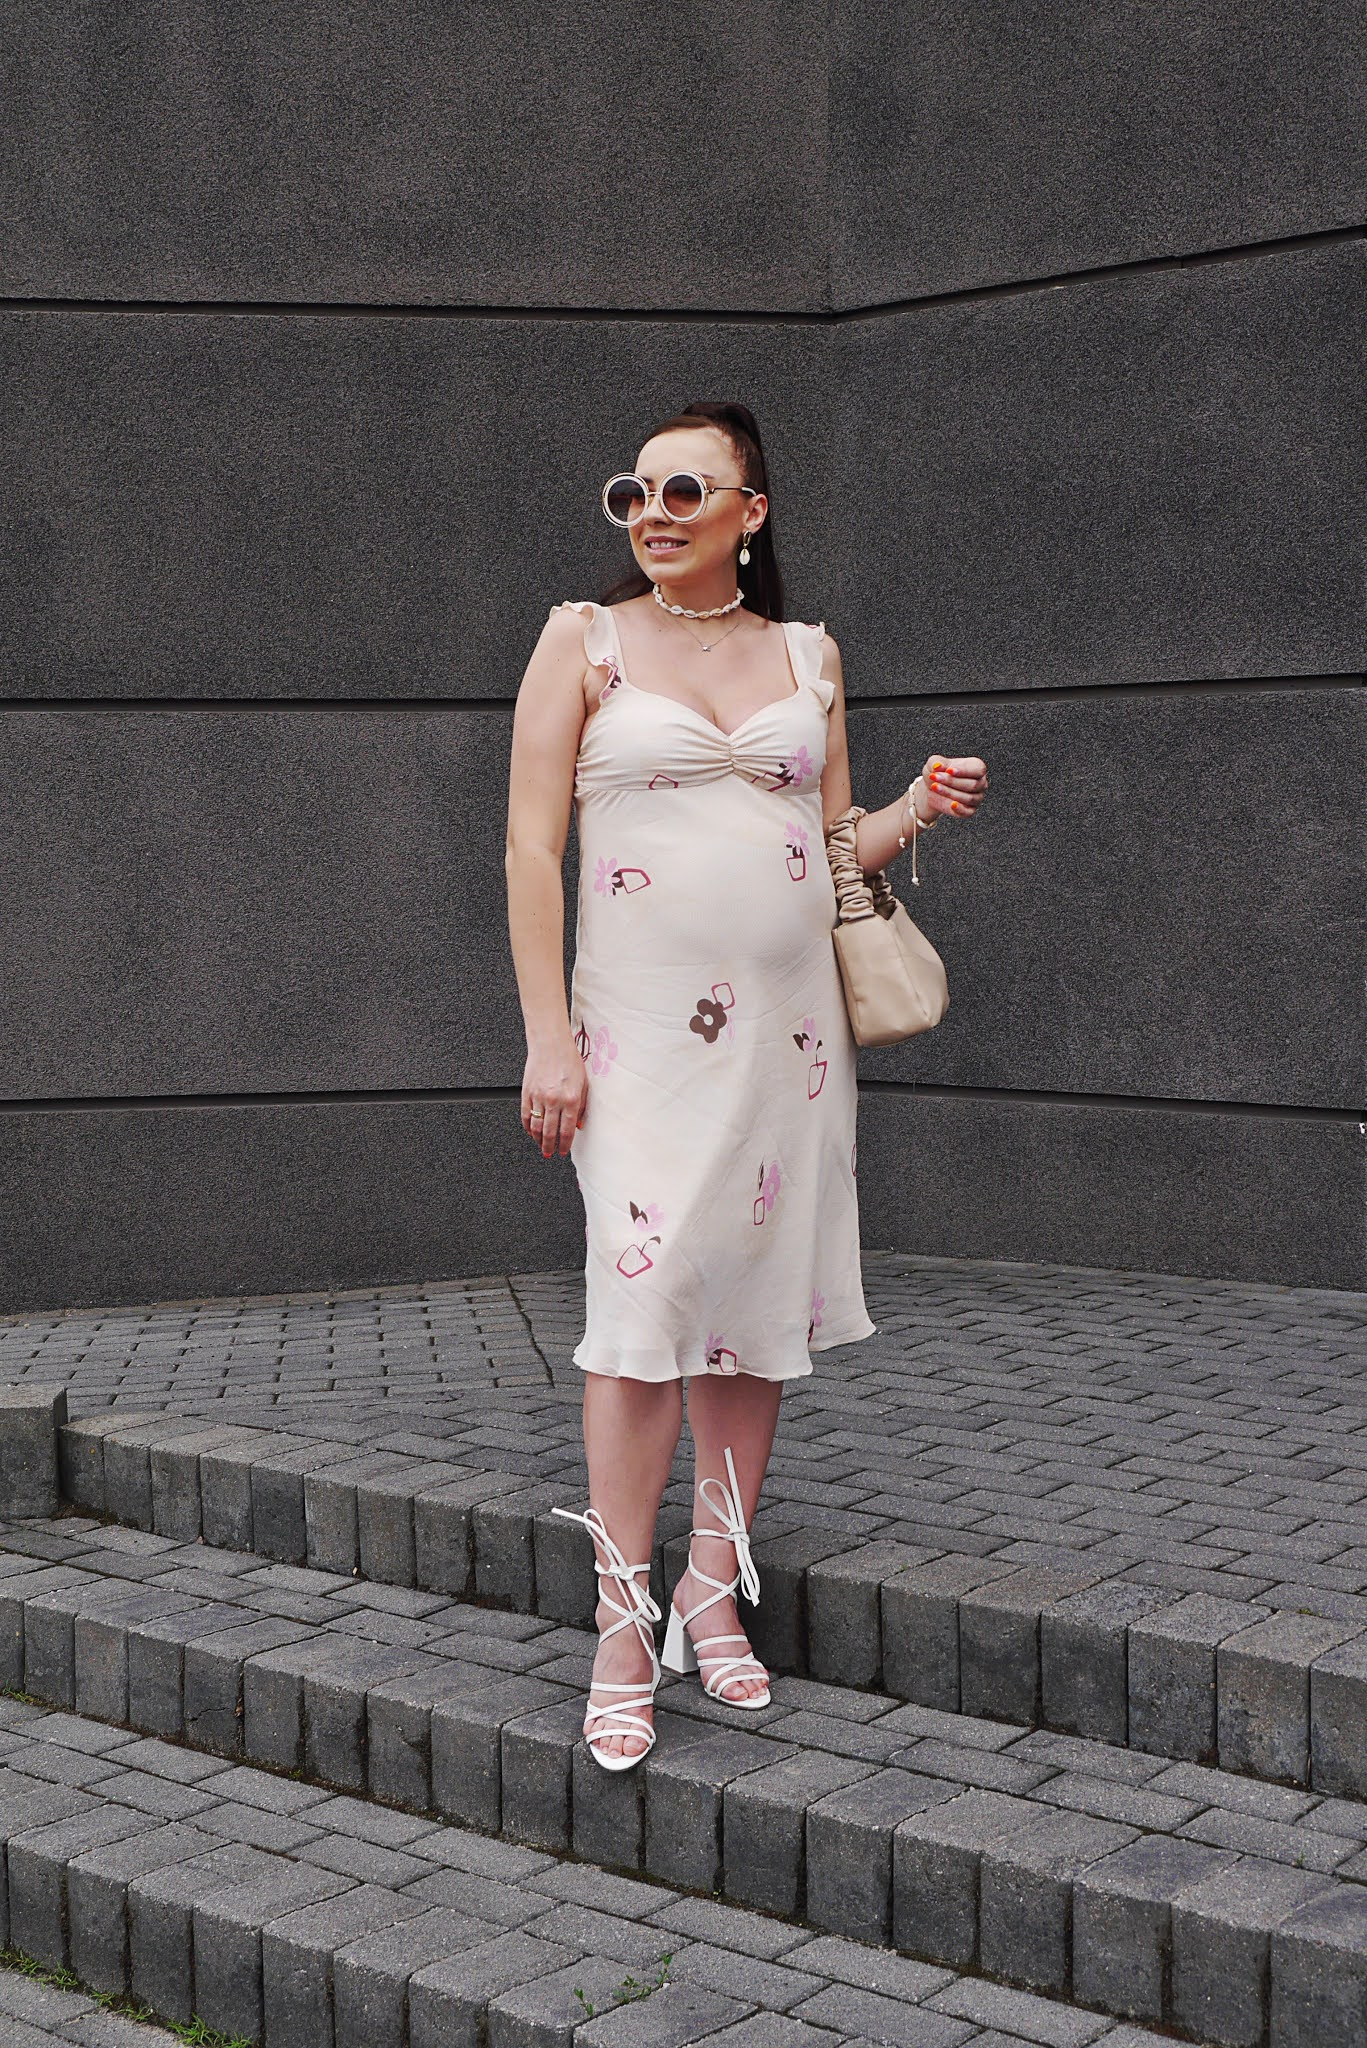 fashion blogger maternity look outfit ootd retro dress baige bag white sandals bonprix ccc pregnant outfit look inspiration mamacita